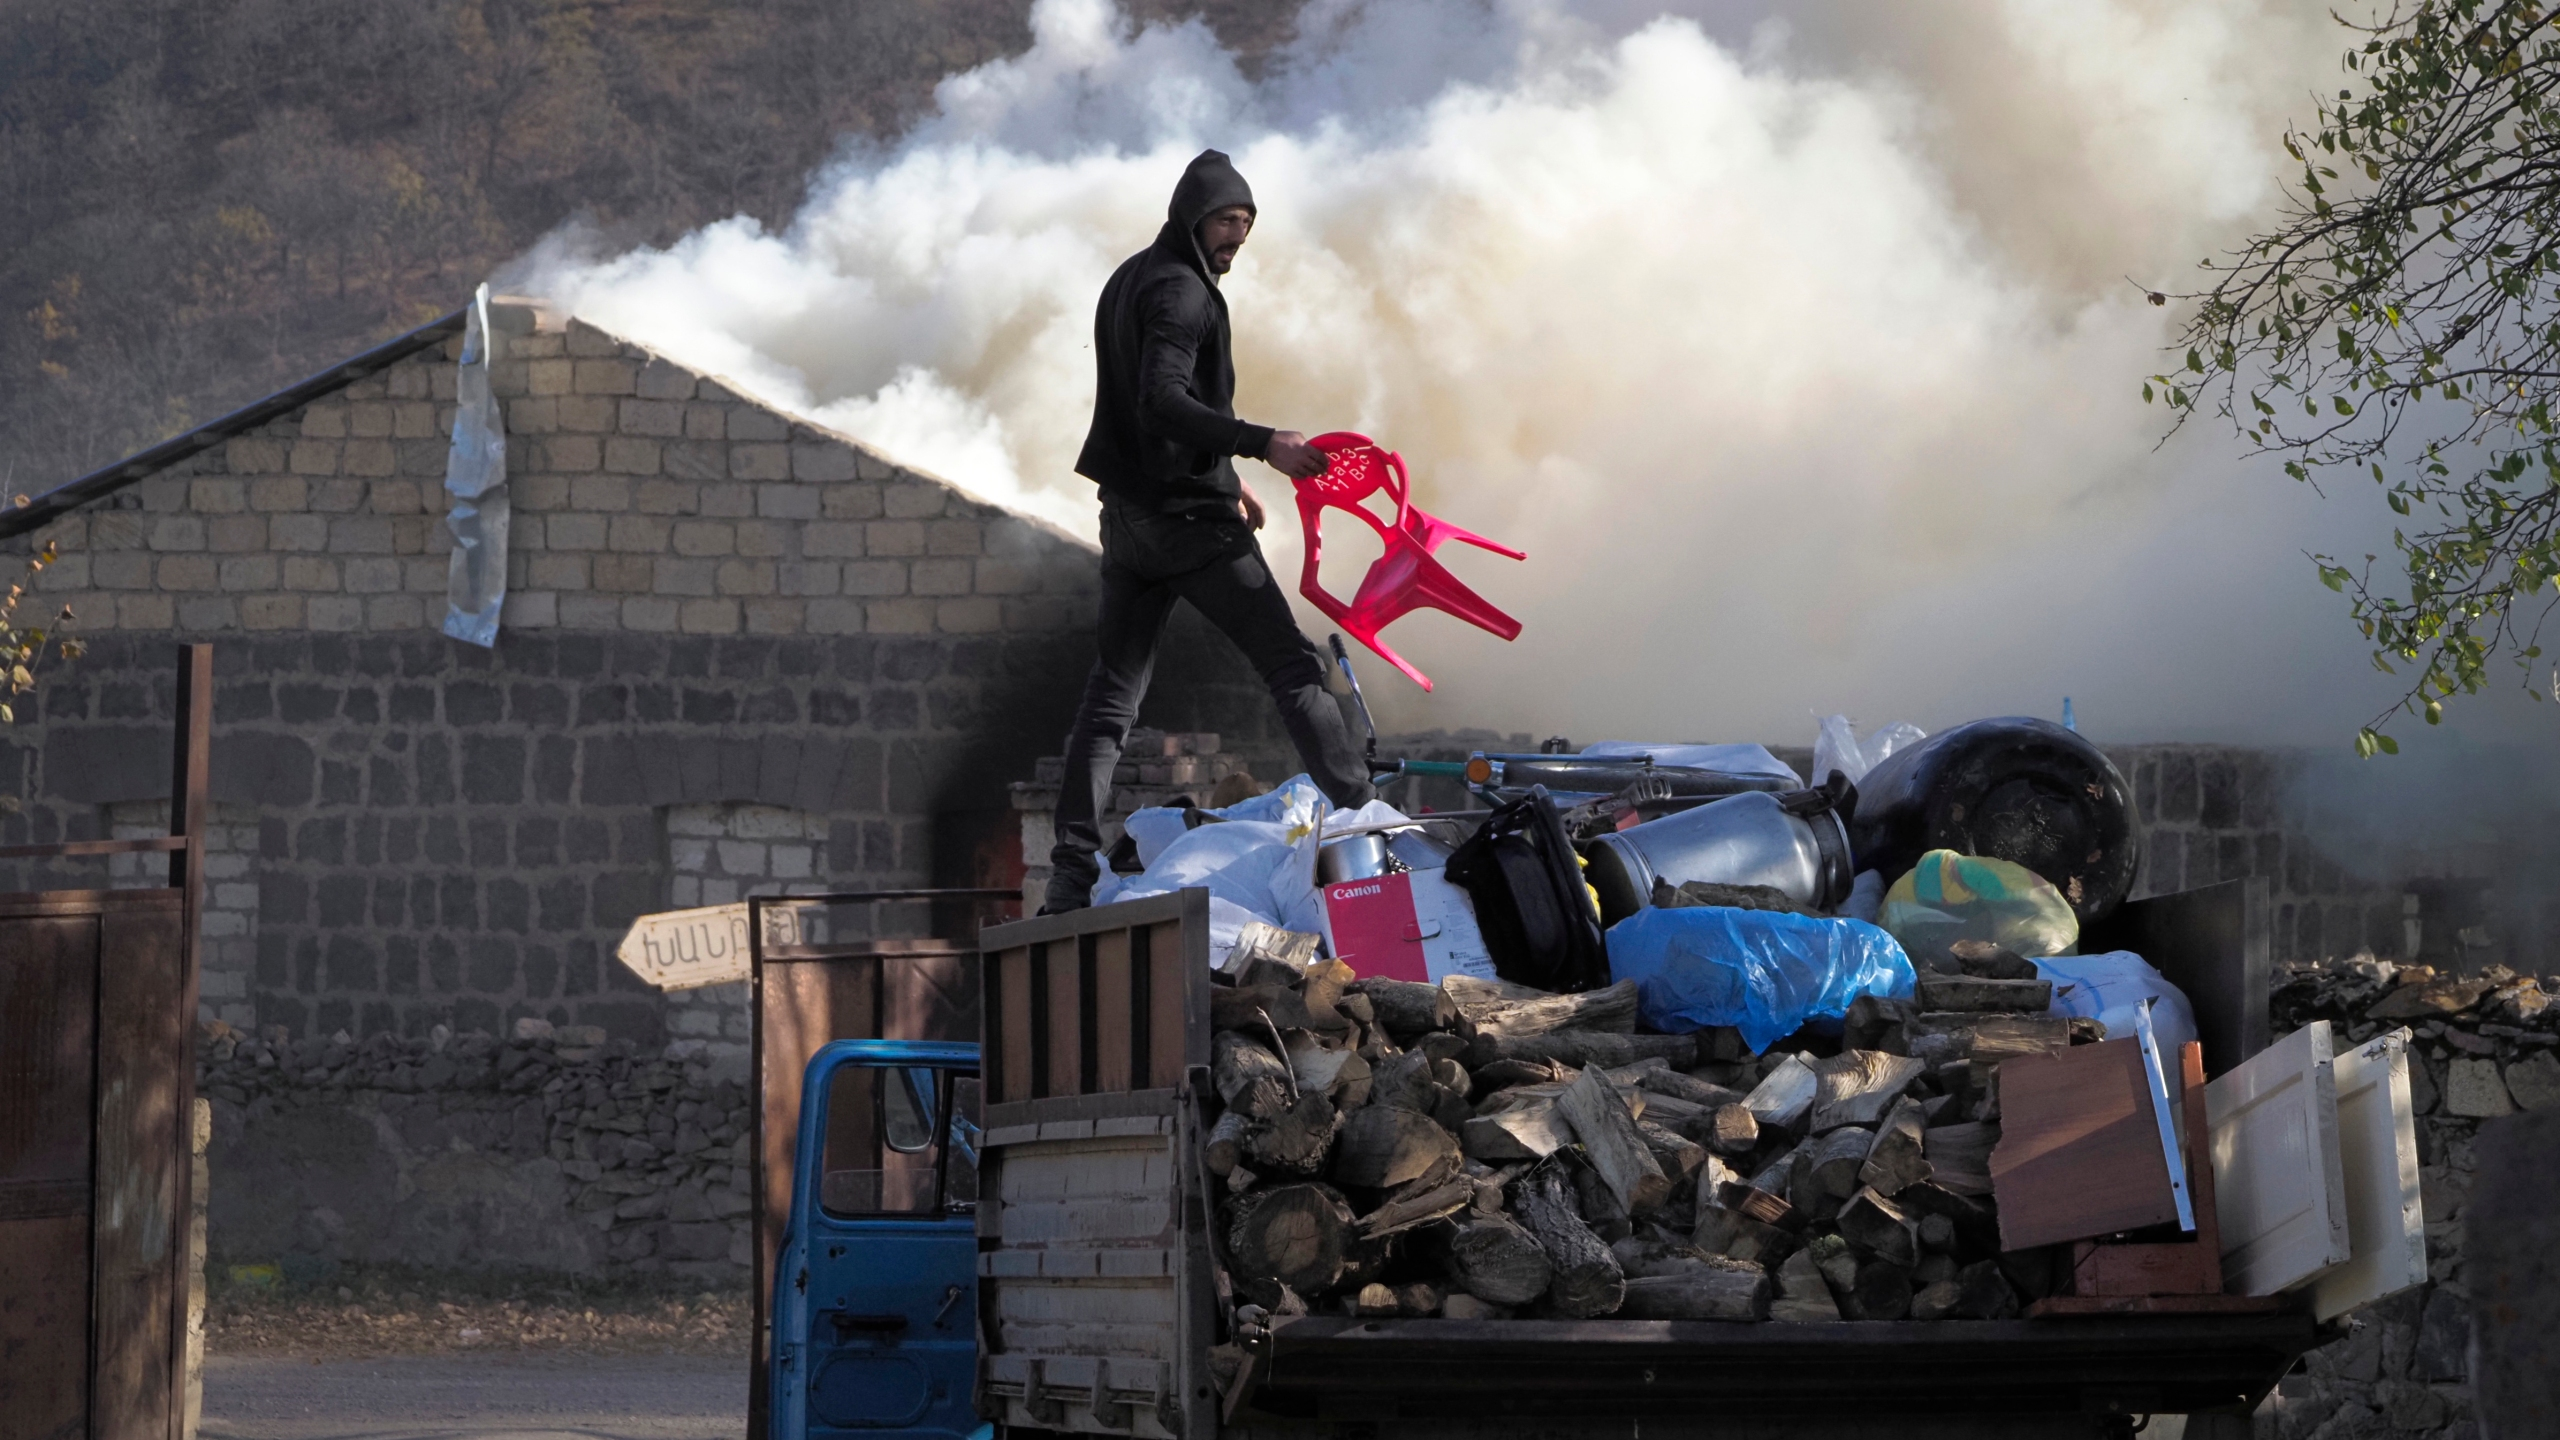 A man loads possessions on his truck after setting his home on fire, in an area once occupied by Armenian forces but is soon to be turned over to Azerbaijan, in Karvachar, the separatist region of Nagorno-Karabakh, on Friday, Nov. 13, 2020. (Dmitry Lovetsky/AP Photo)